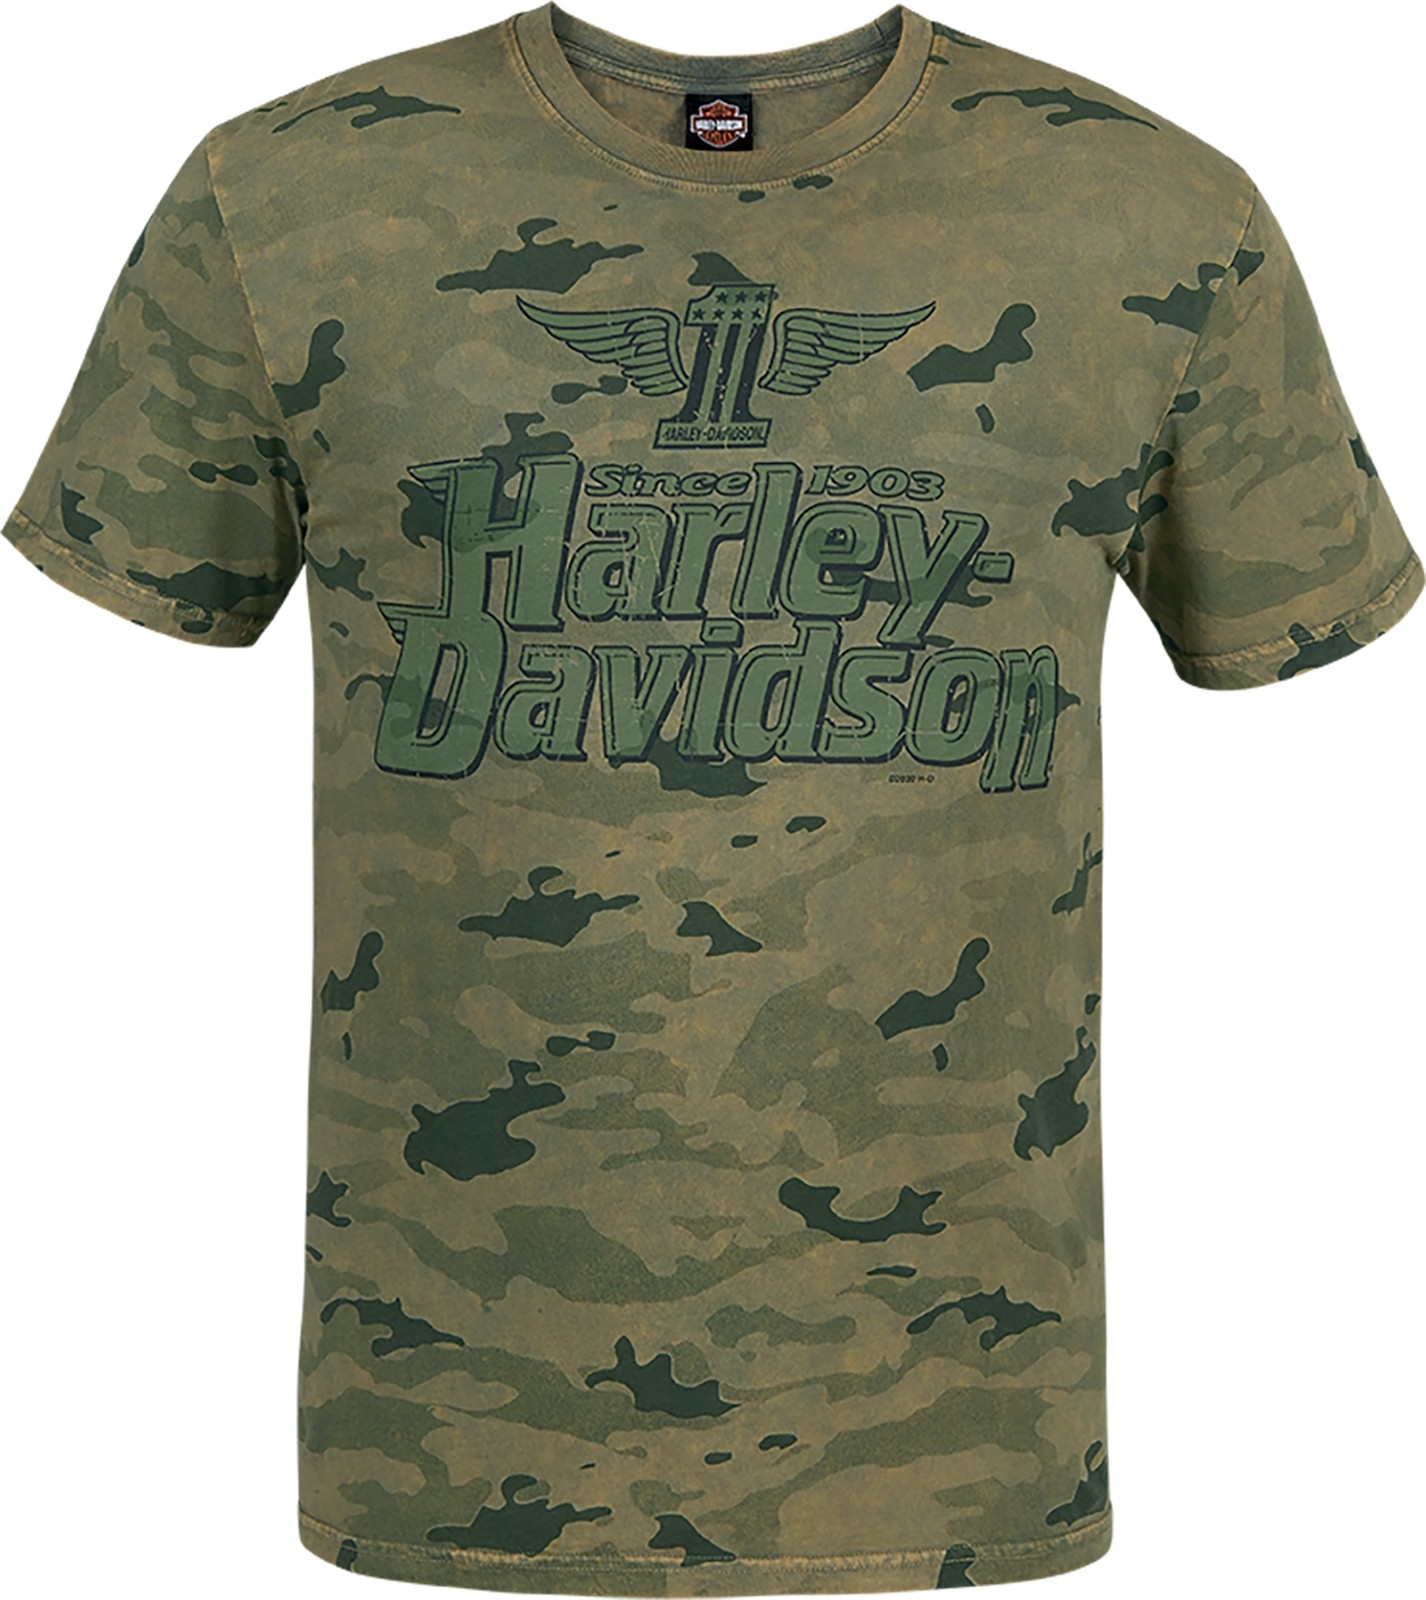 Men's Camouflage Graphic T-Shirt - USAG Grafenwohr | Premium Name